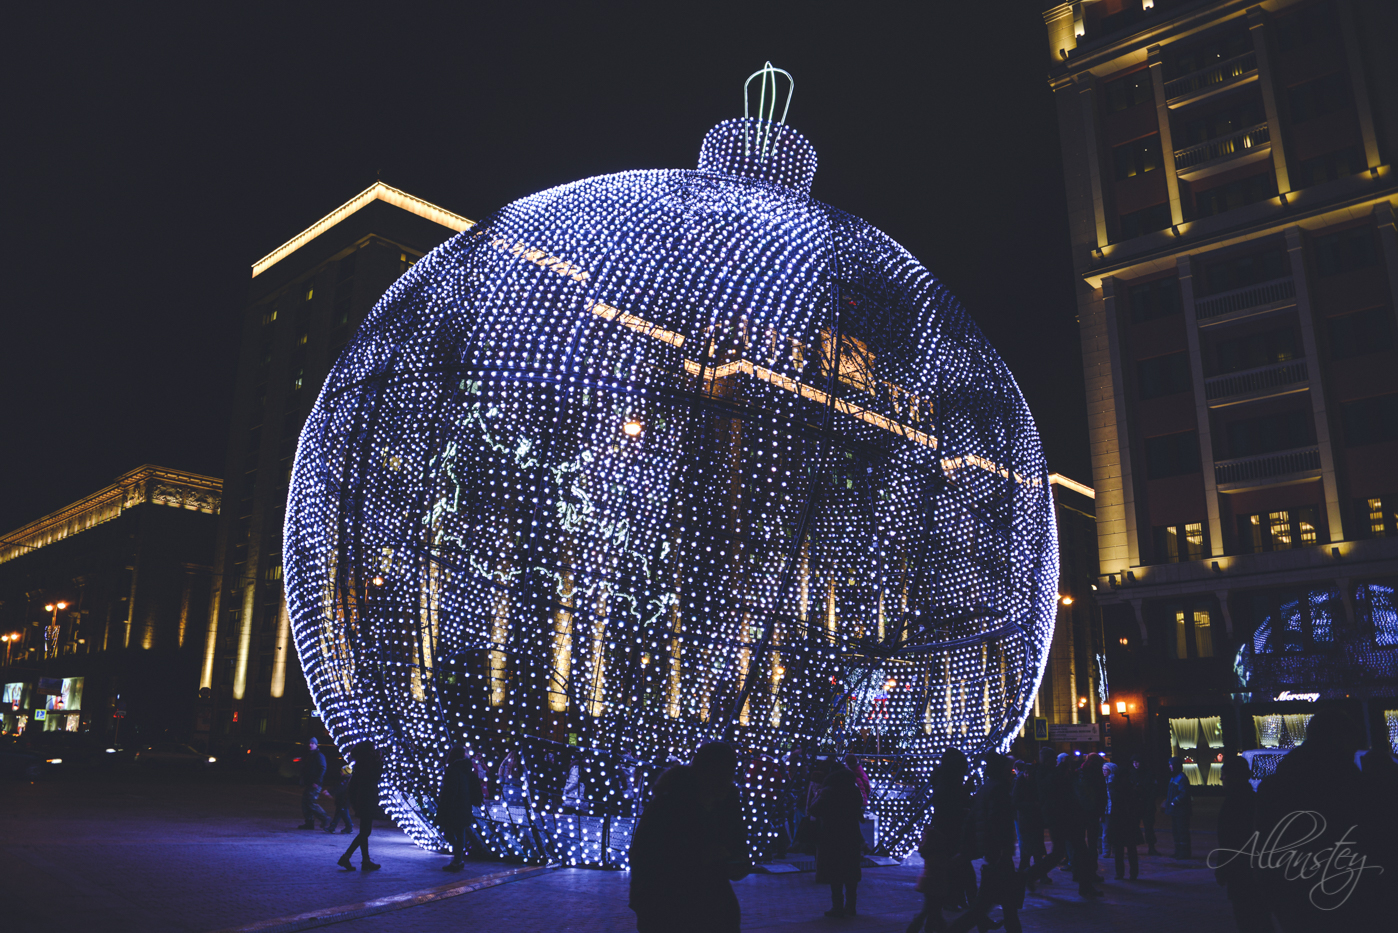 Giant led illuminated Christmas ball in Moscow, Russia